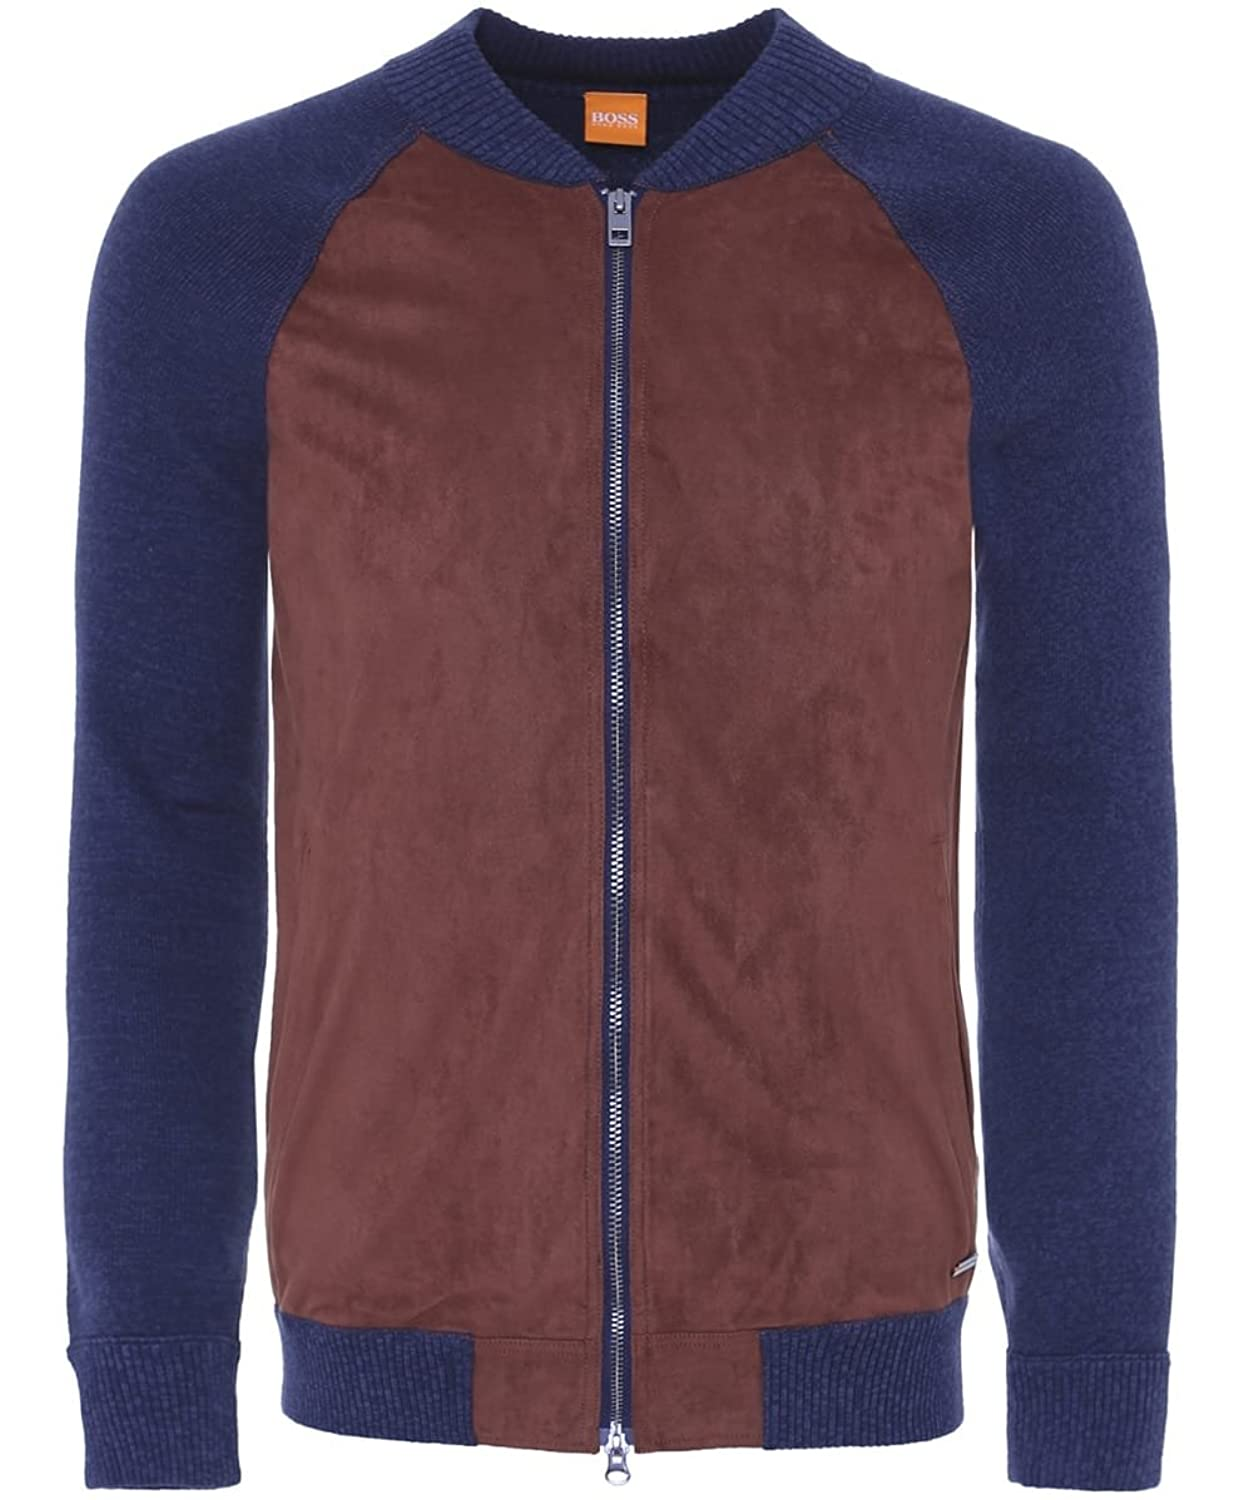 Hugo Boss Orange Men's Arbomber Knitted Sleeve Jacket Dark Blue